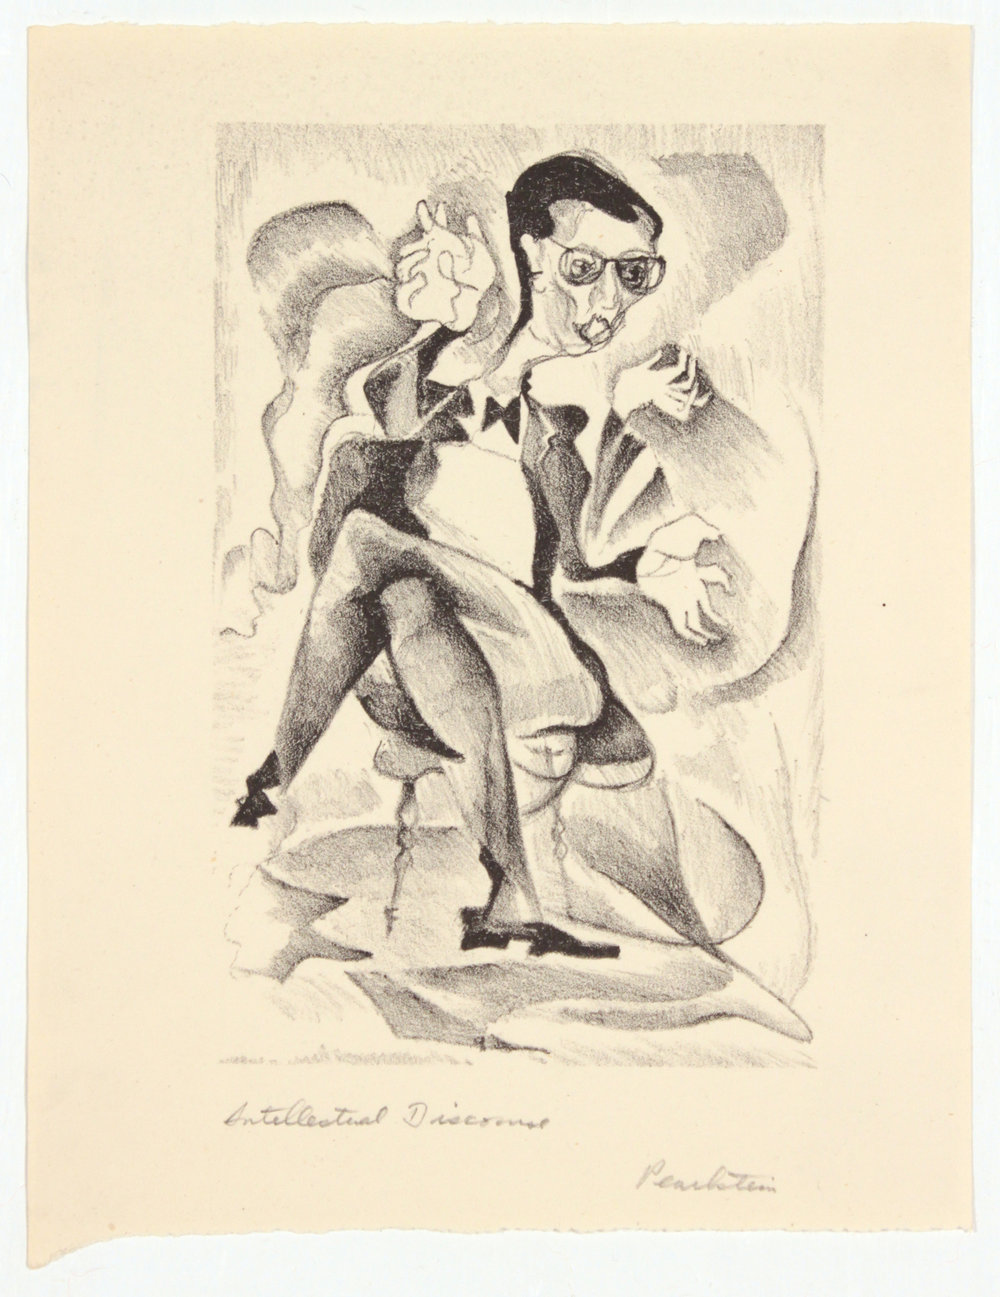 1. 1947-48 c, Collection of Early Prints Done at Carnegie Tech, Intellectual Discourse, Lithograph, 7.50x 6, PPS 1310.JPG